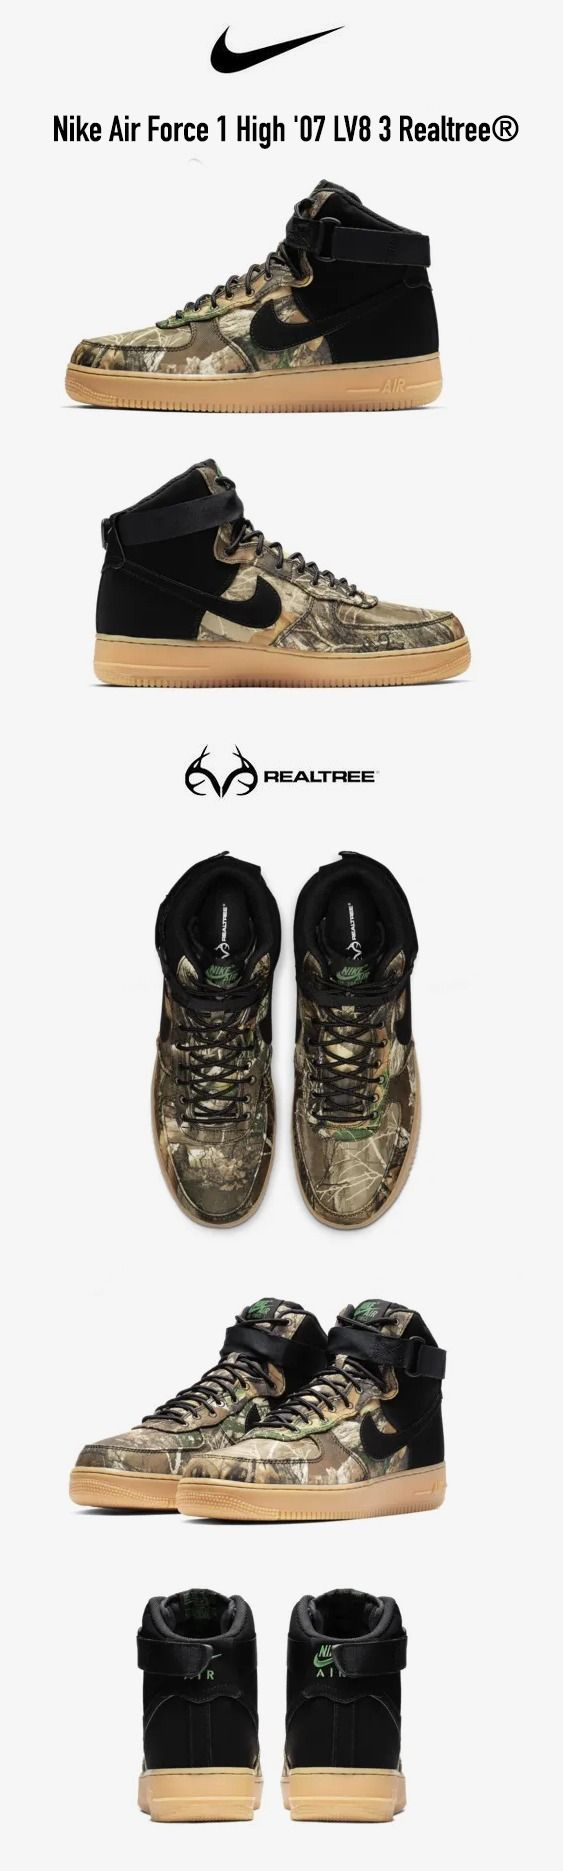 db1a73db6 Nike Air Force 1 High  07 LV8 3 Realtree® EDGE